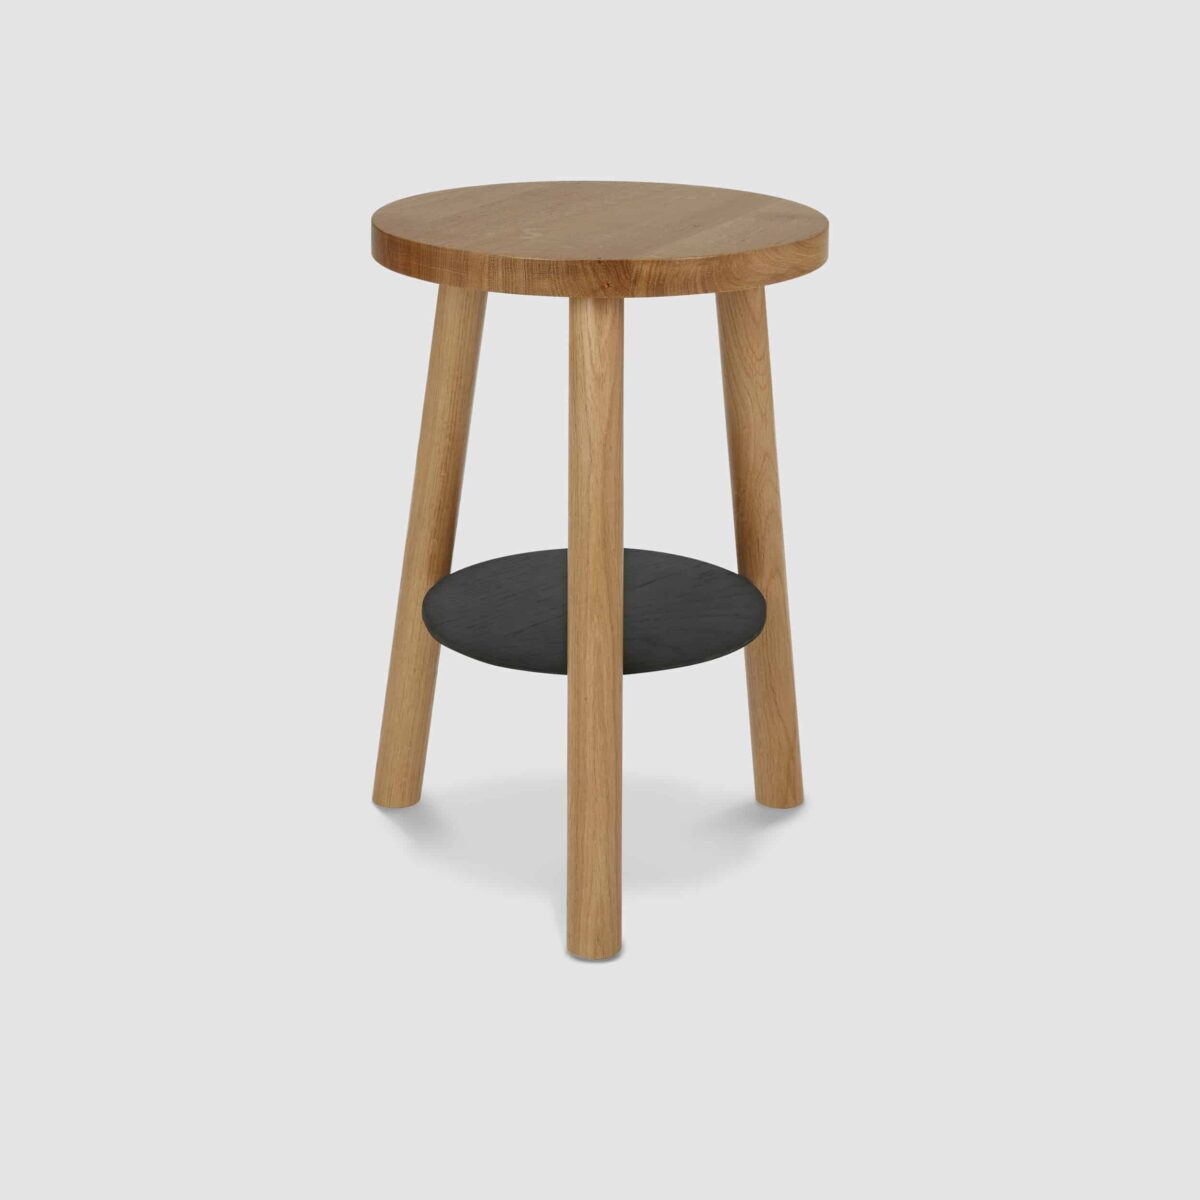 semley-side-table-oak-another-country-002